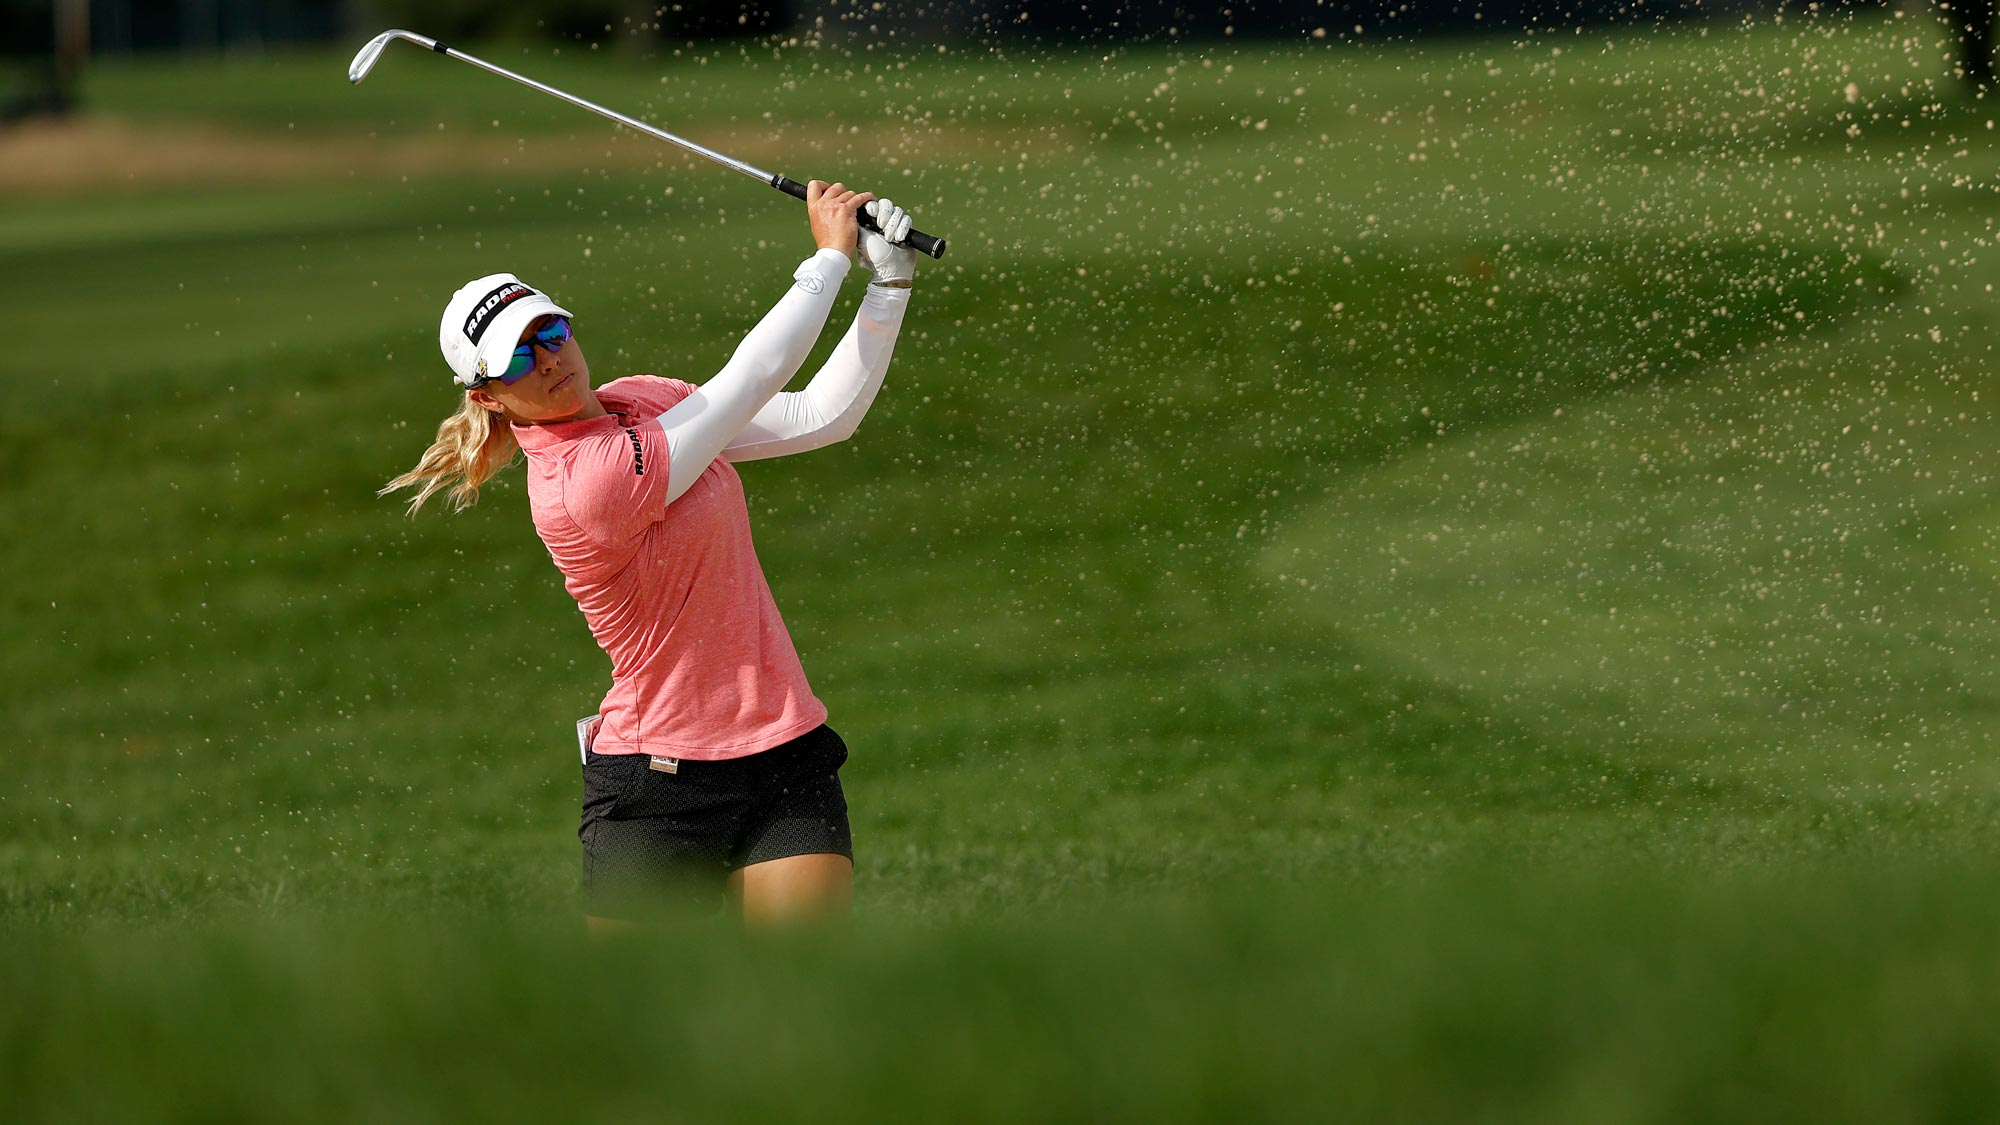 Jodi Ewart Shadoff of England plays a shot from a bunker on the 14th hole during the final round of the LPGA Drive On Championship